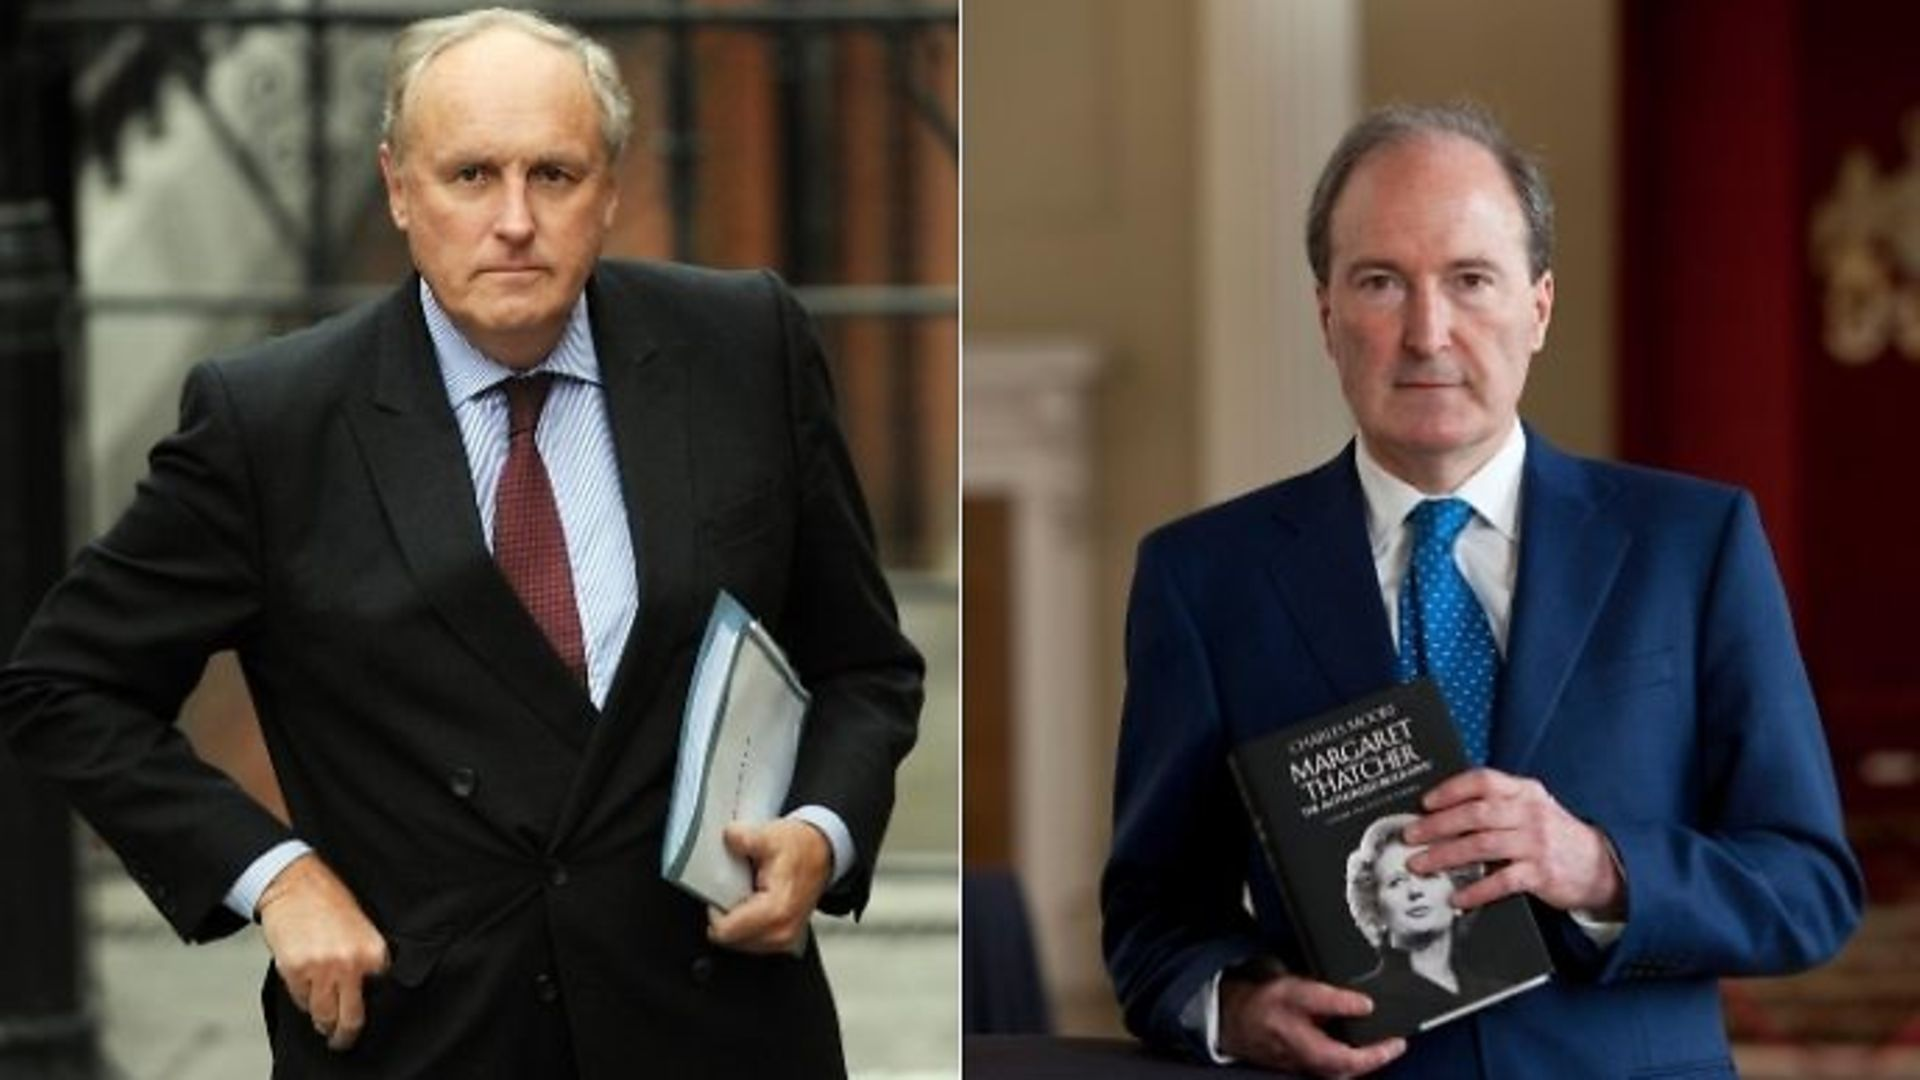 Paul Dacre (L) is being touted to become the next Ofcom chairman while Lord Charles Moore has been asked to take up the role of BBC chair - Credit: PA/Stefan Rousseau/David Levenson/Getty